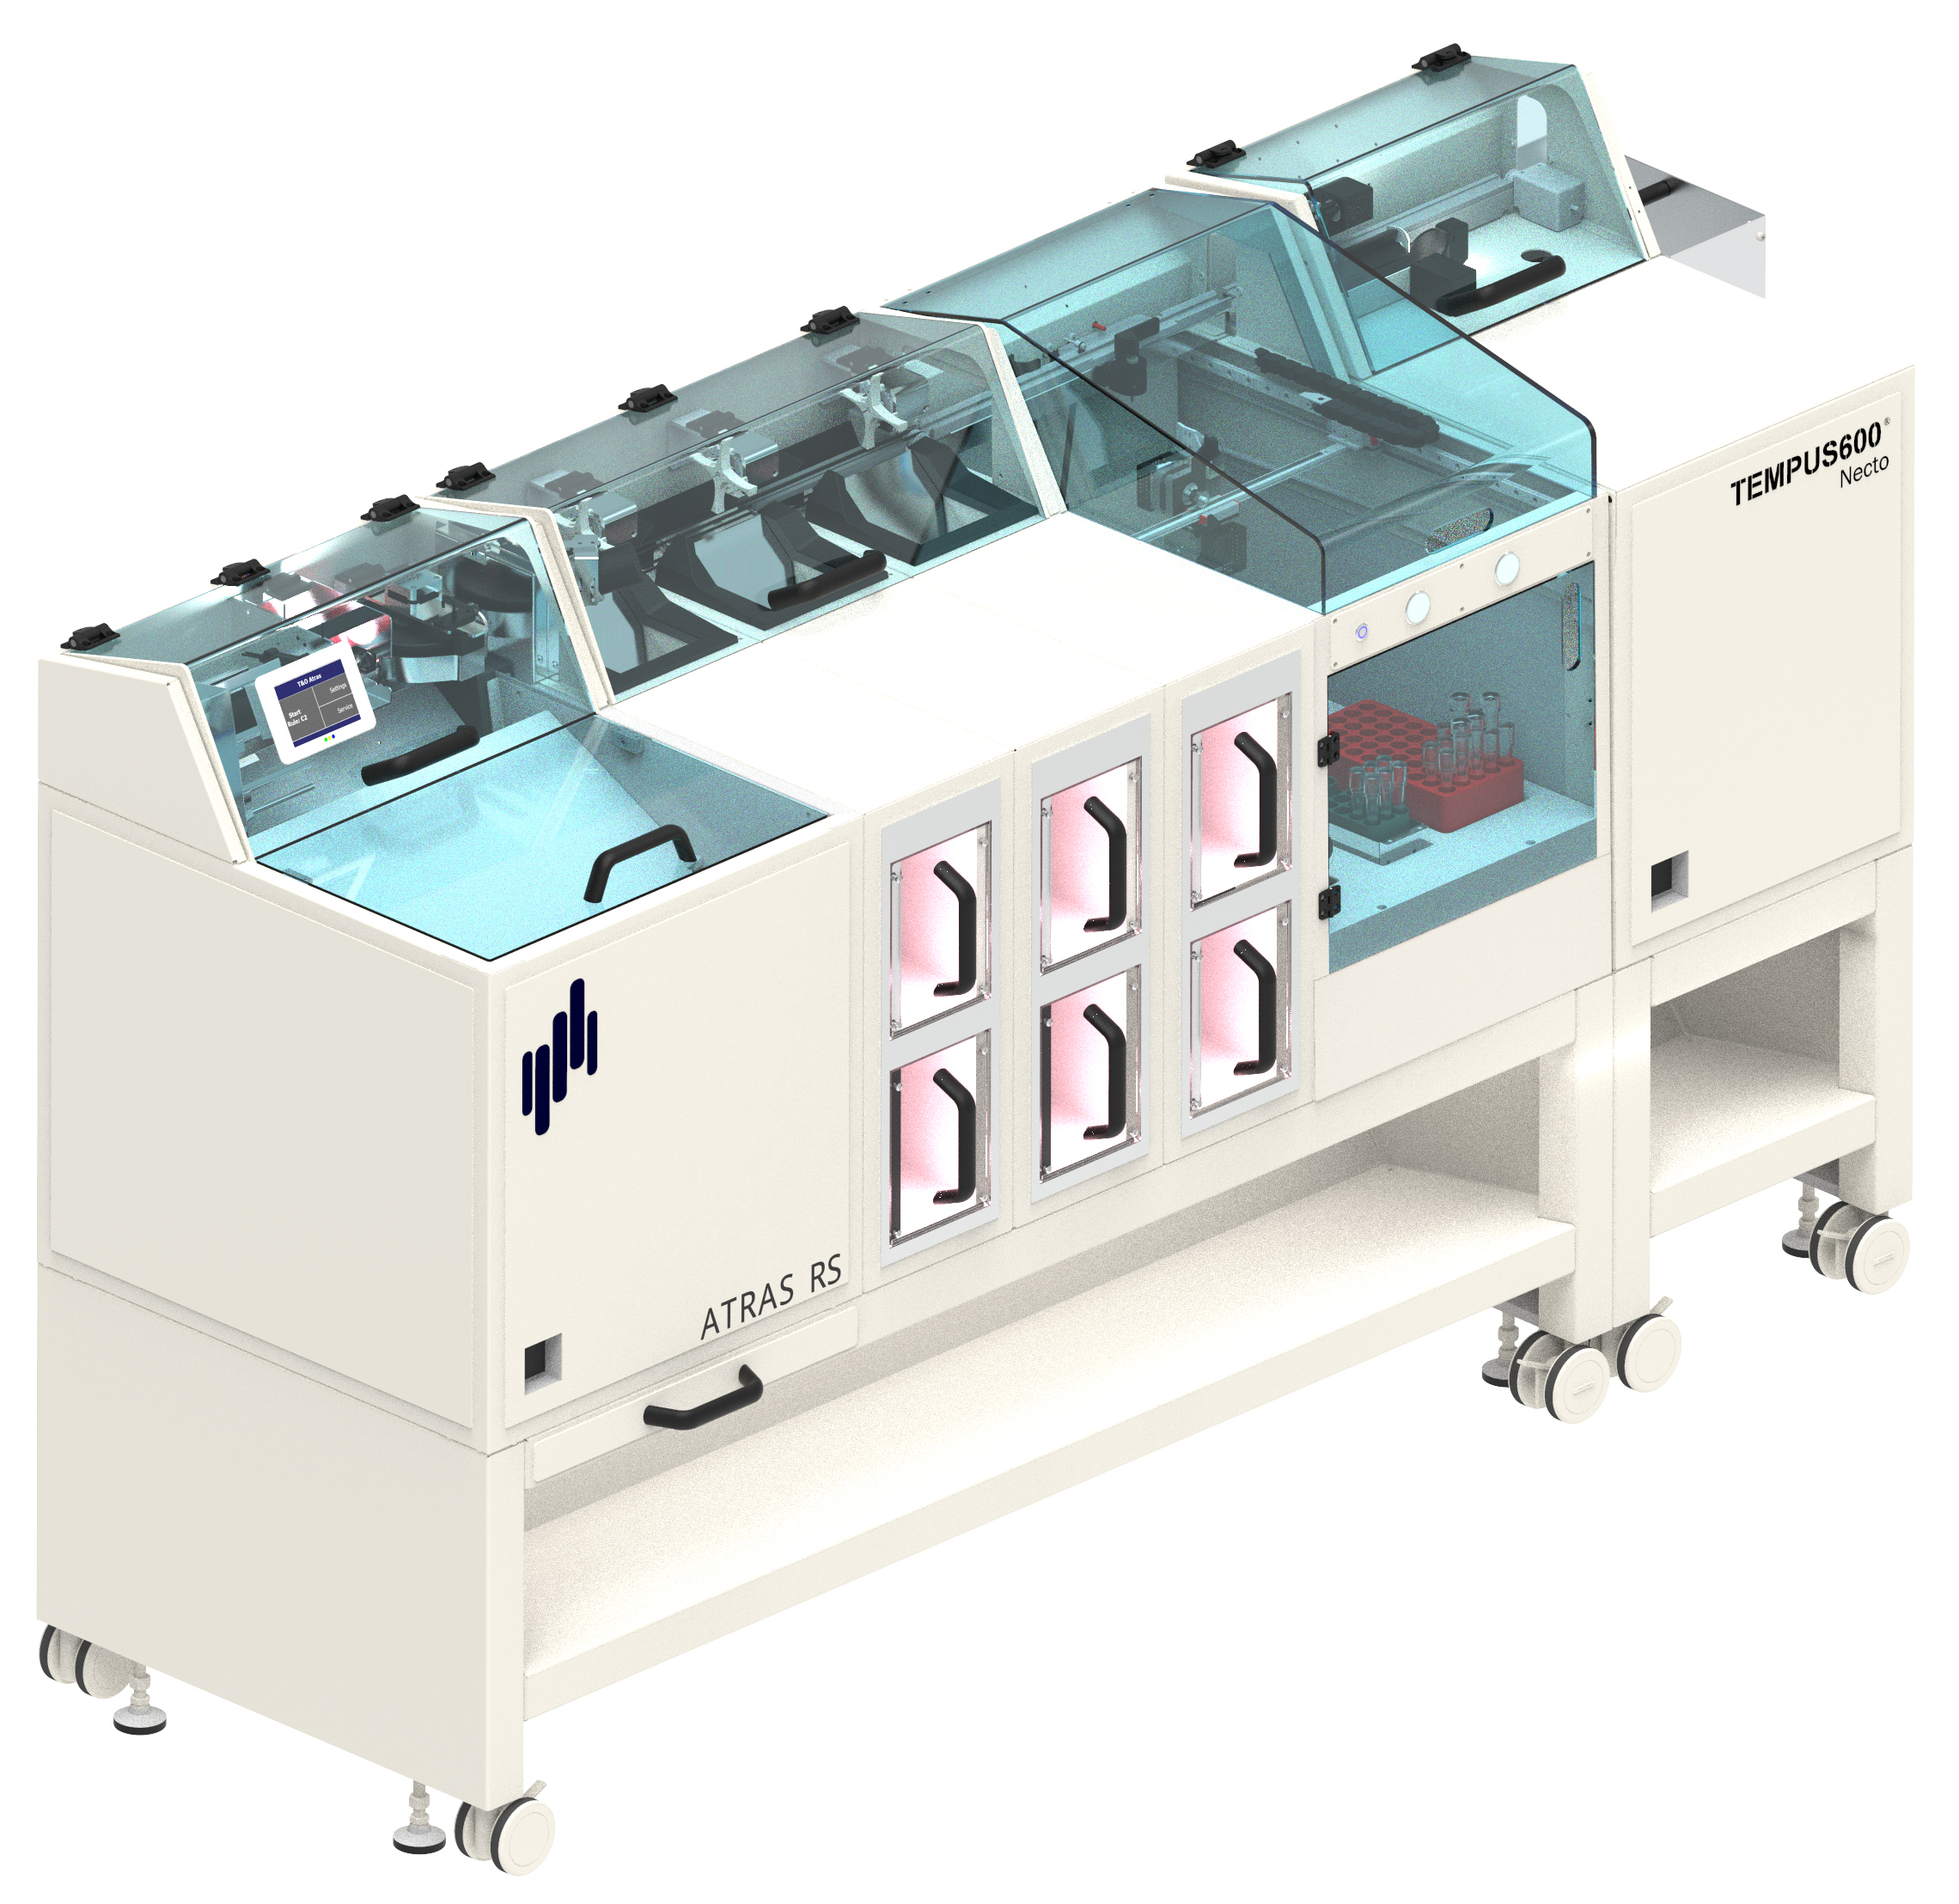 The ATRAS Necto registers sample tubes, sorts them into bulk and rack target modules, and sends the specimen via a pneumatic sending station with Tempus600 to their next destination in the laboratory.